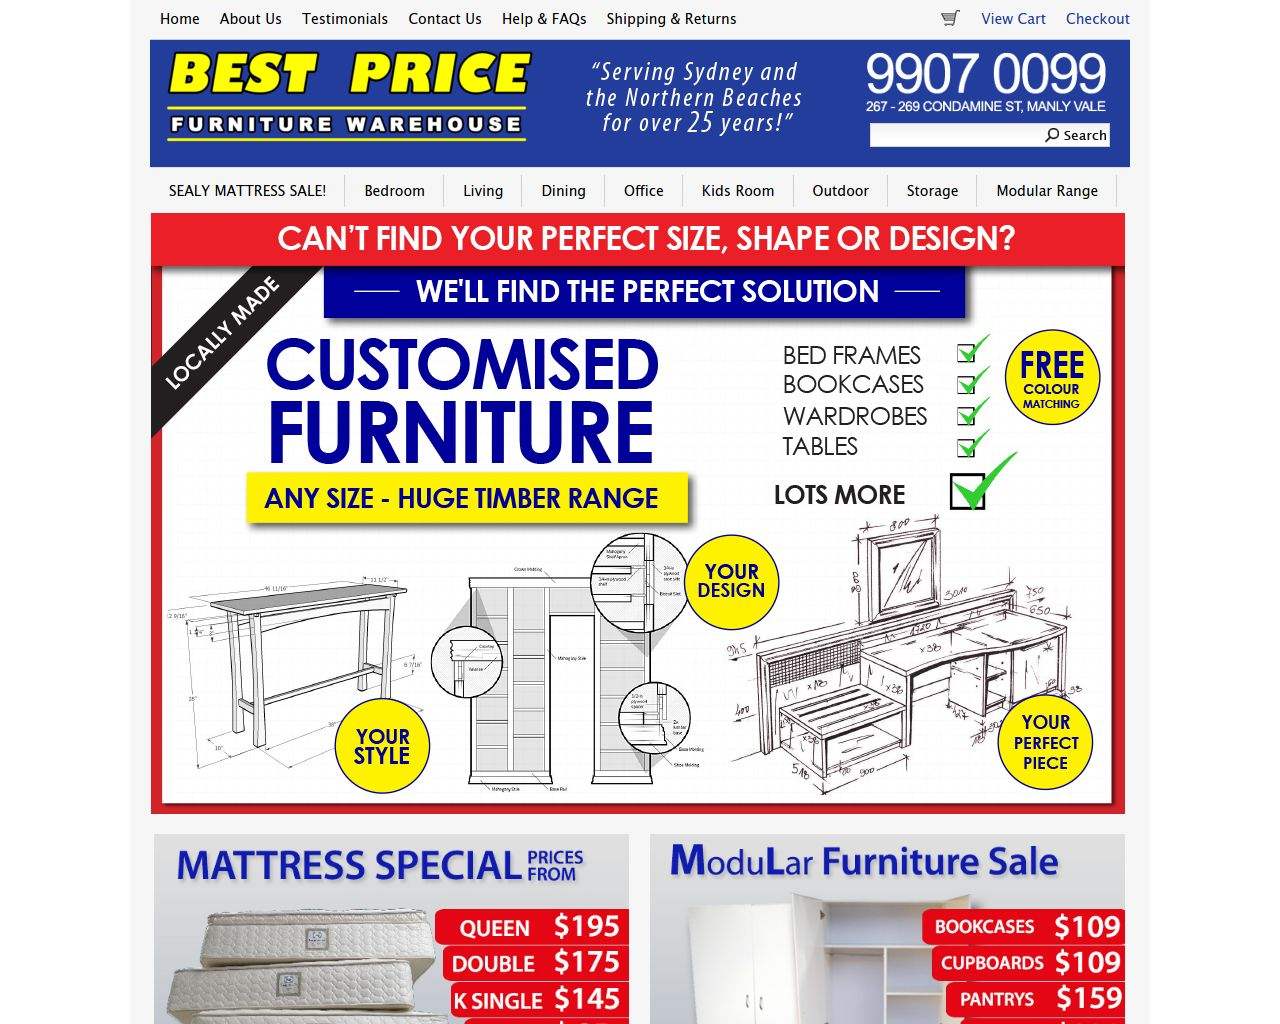 Best price furn manly vale merchant details for Best furniture for the price